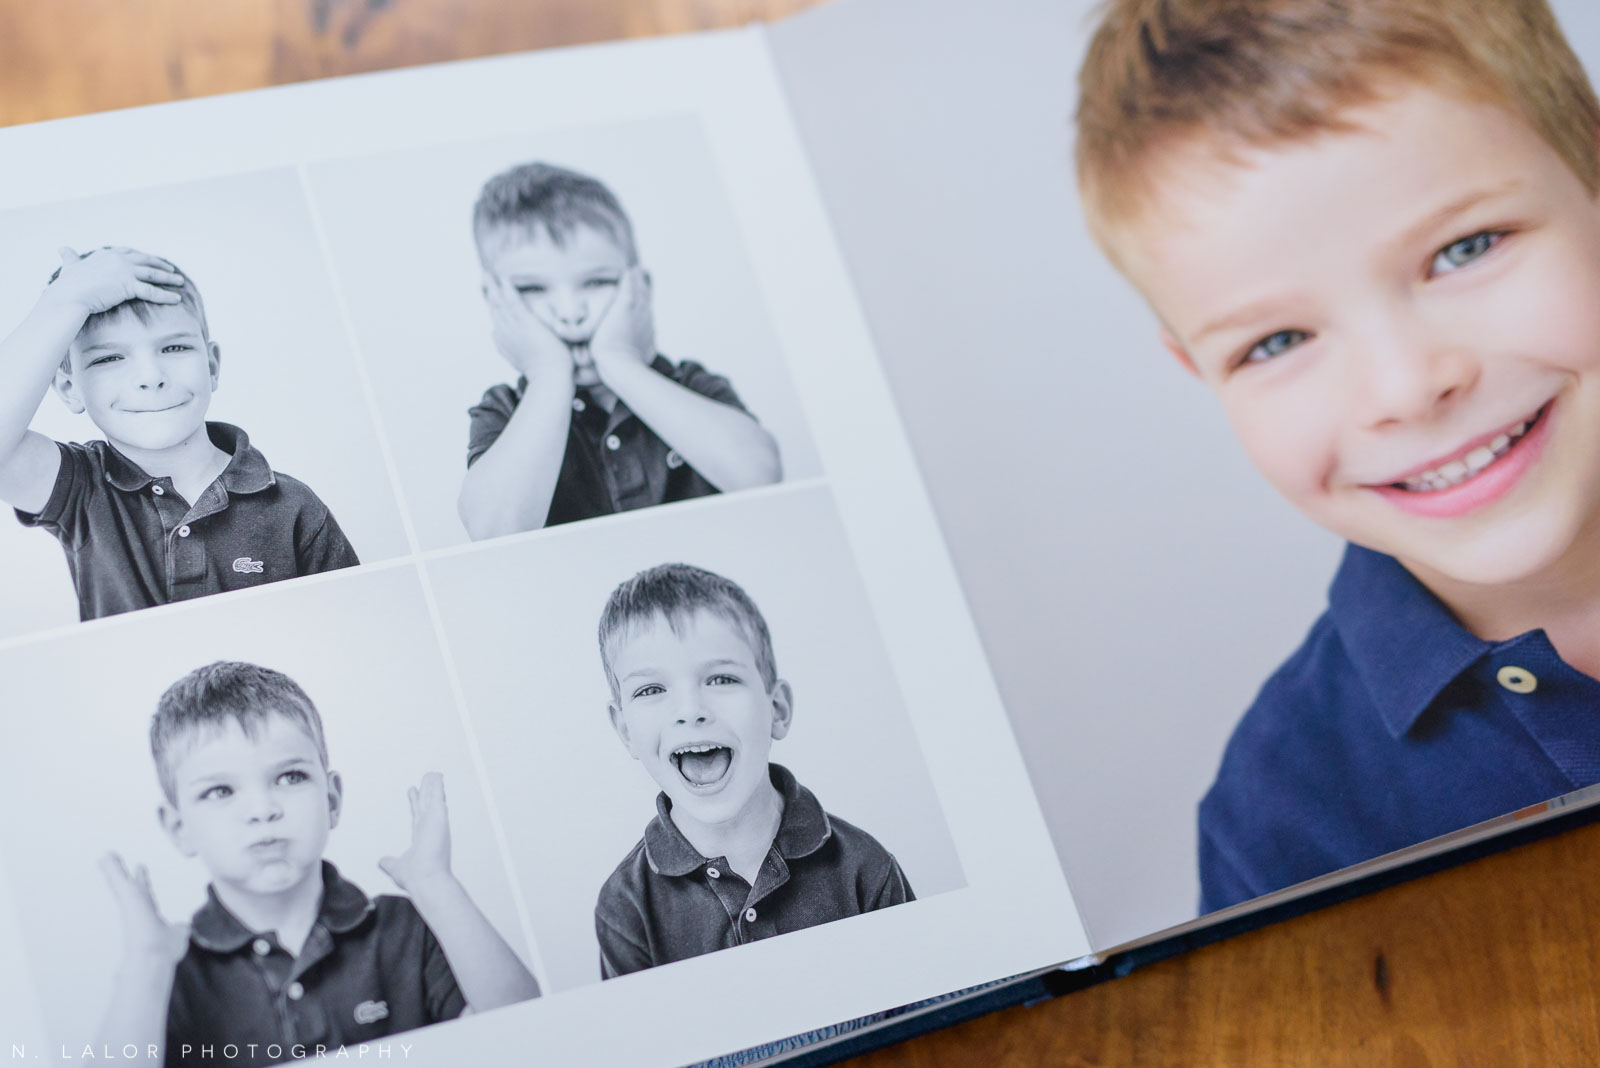 Image of a family heirloom album, showing a spread with individual portraits of a young boy. Images by N. Lalor Photography, Greenwich Connecticut.